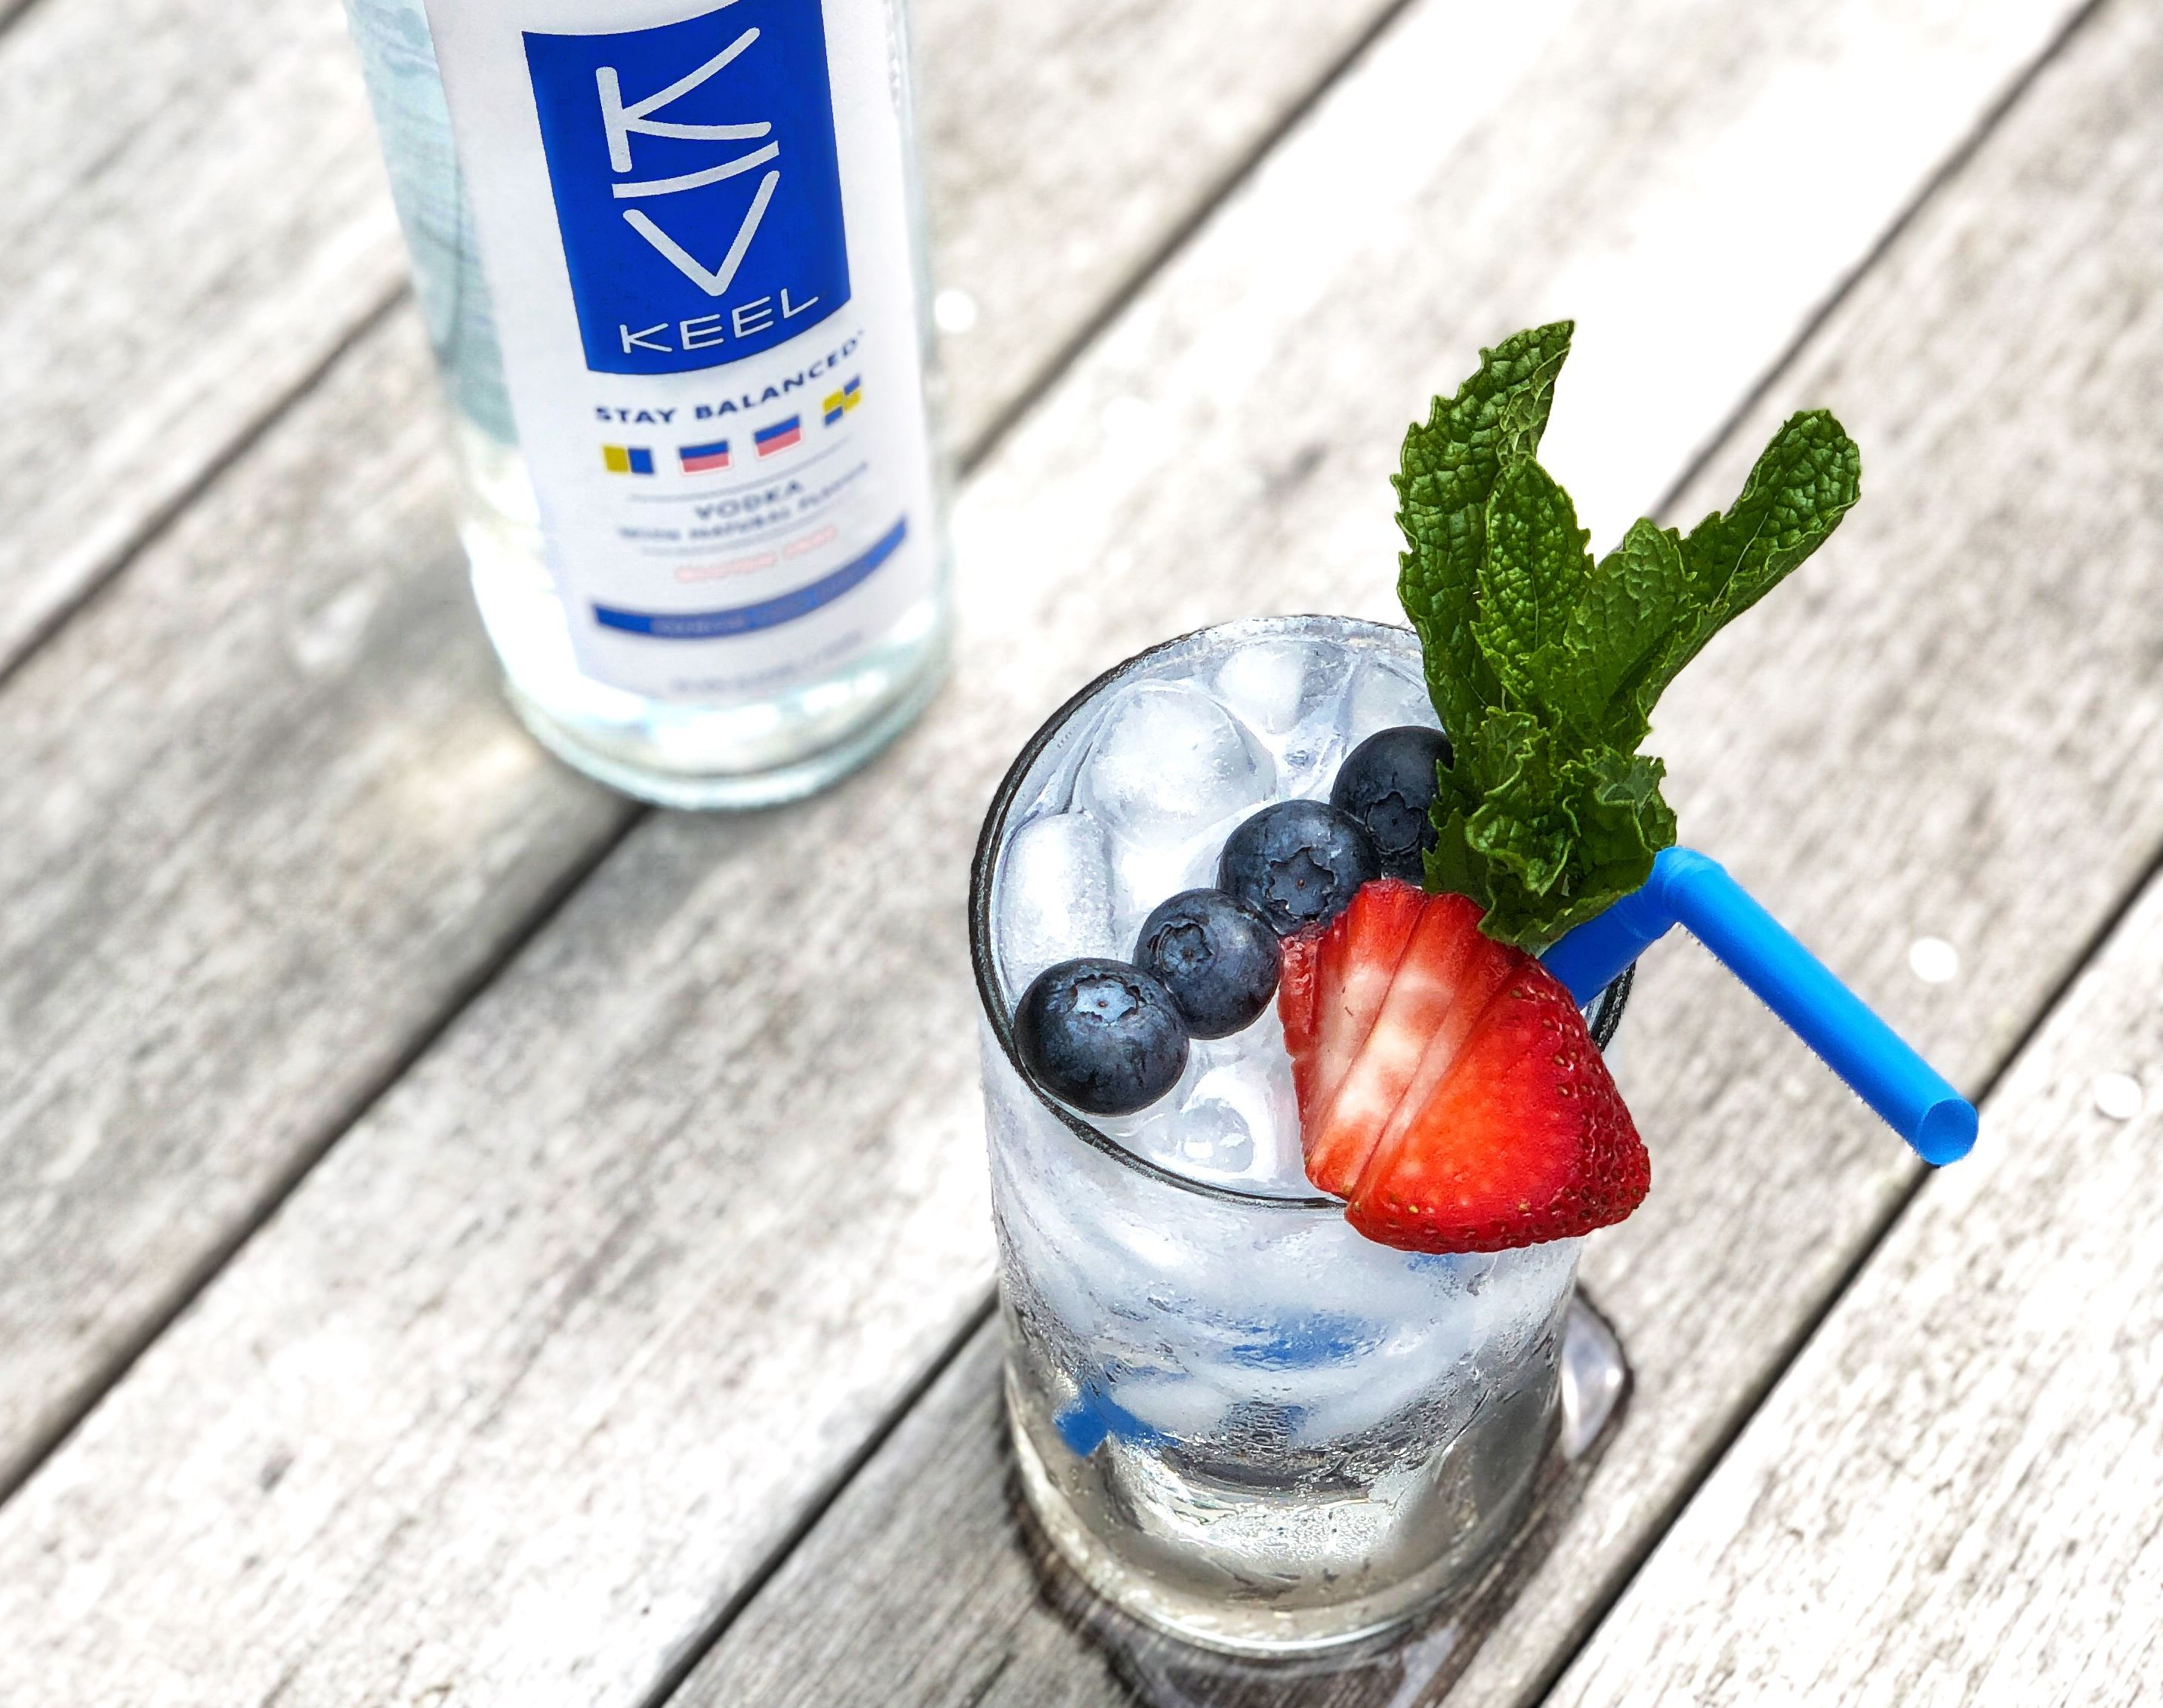 Toast to the red, white and blue: Cheers to patriotic cocktails